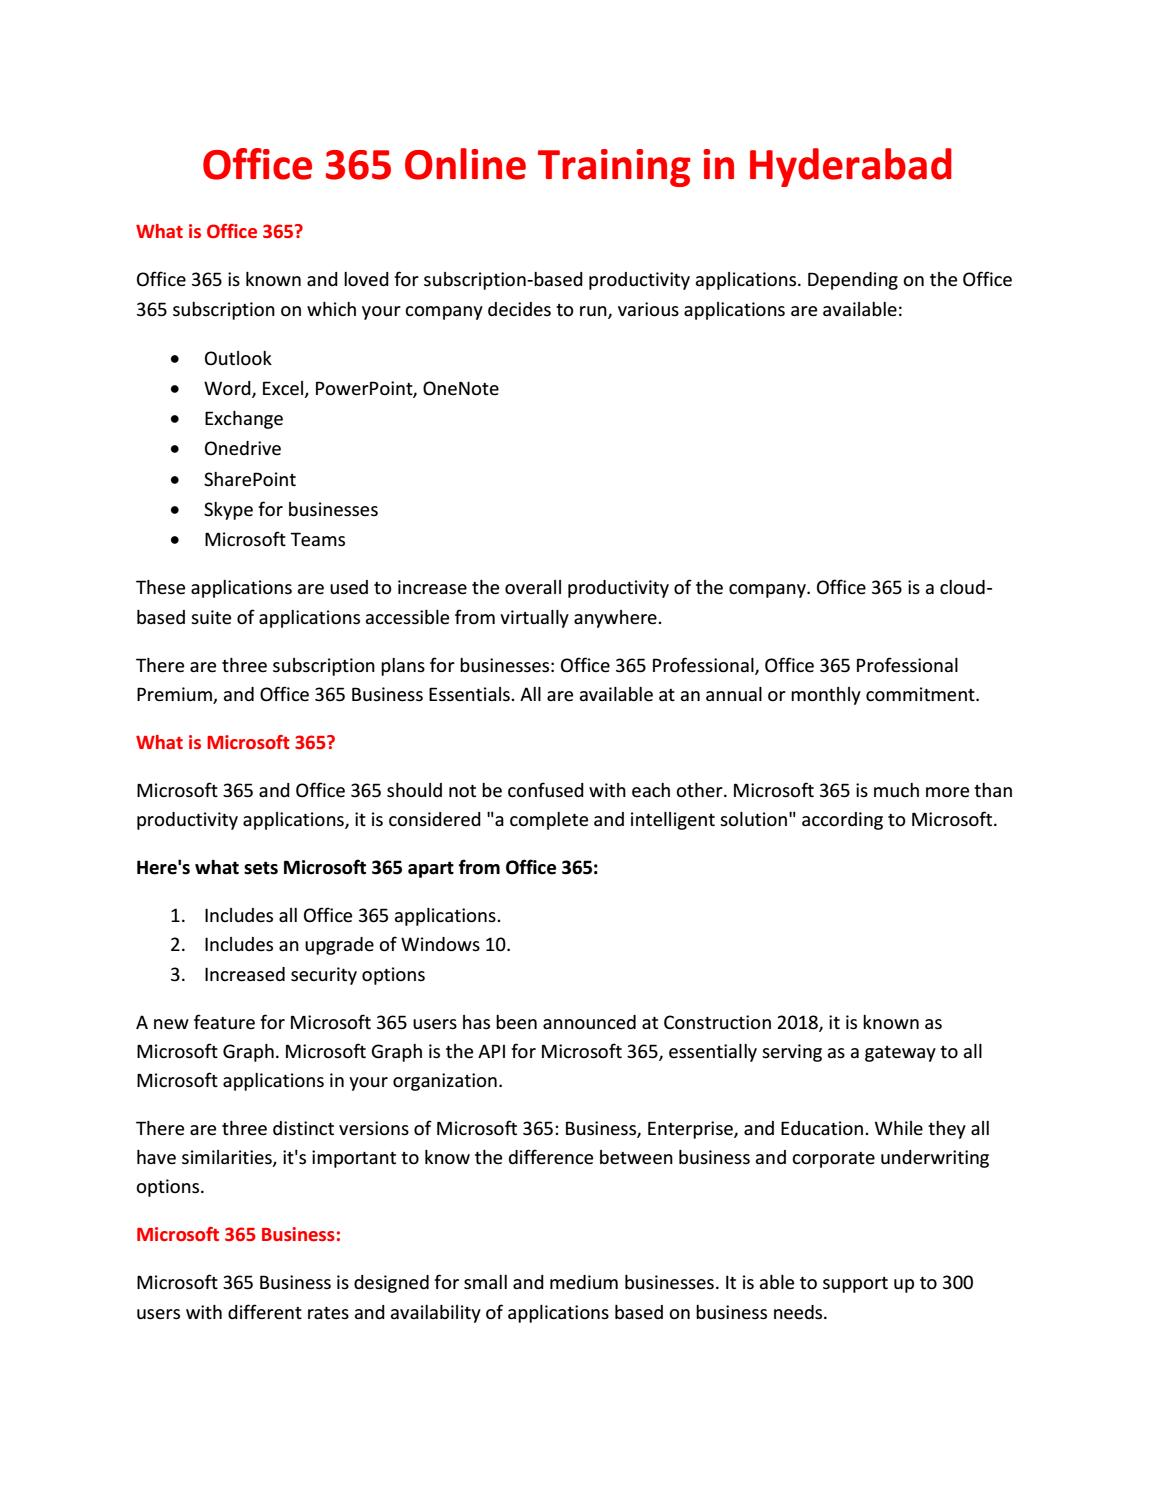 Office 365 Training in Hyderabad by Madhuri Kamsali - issuu